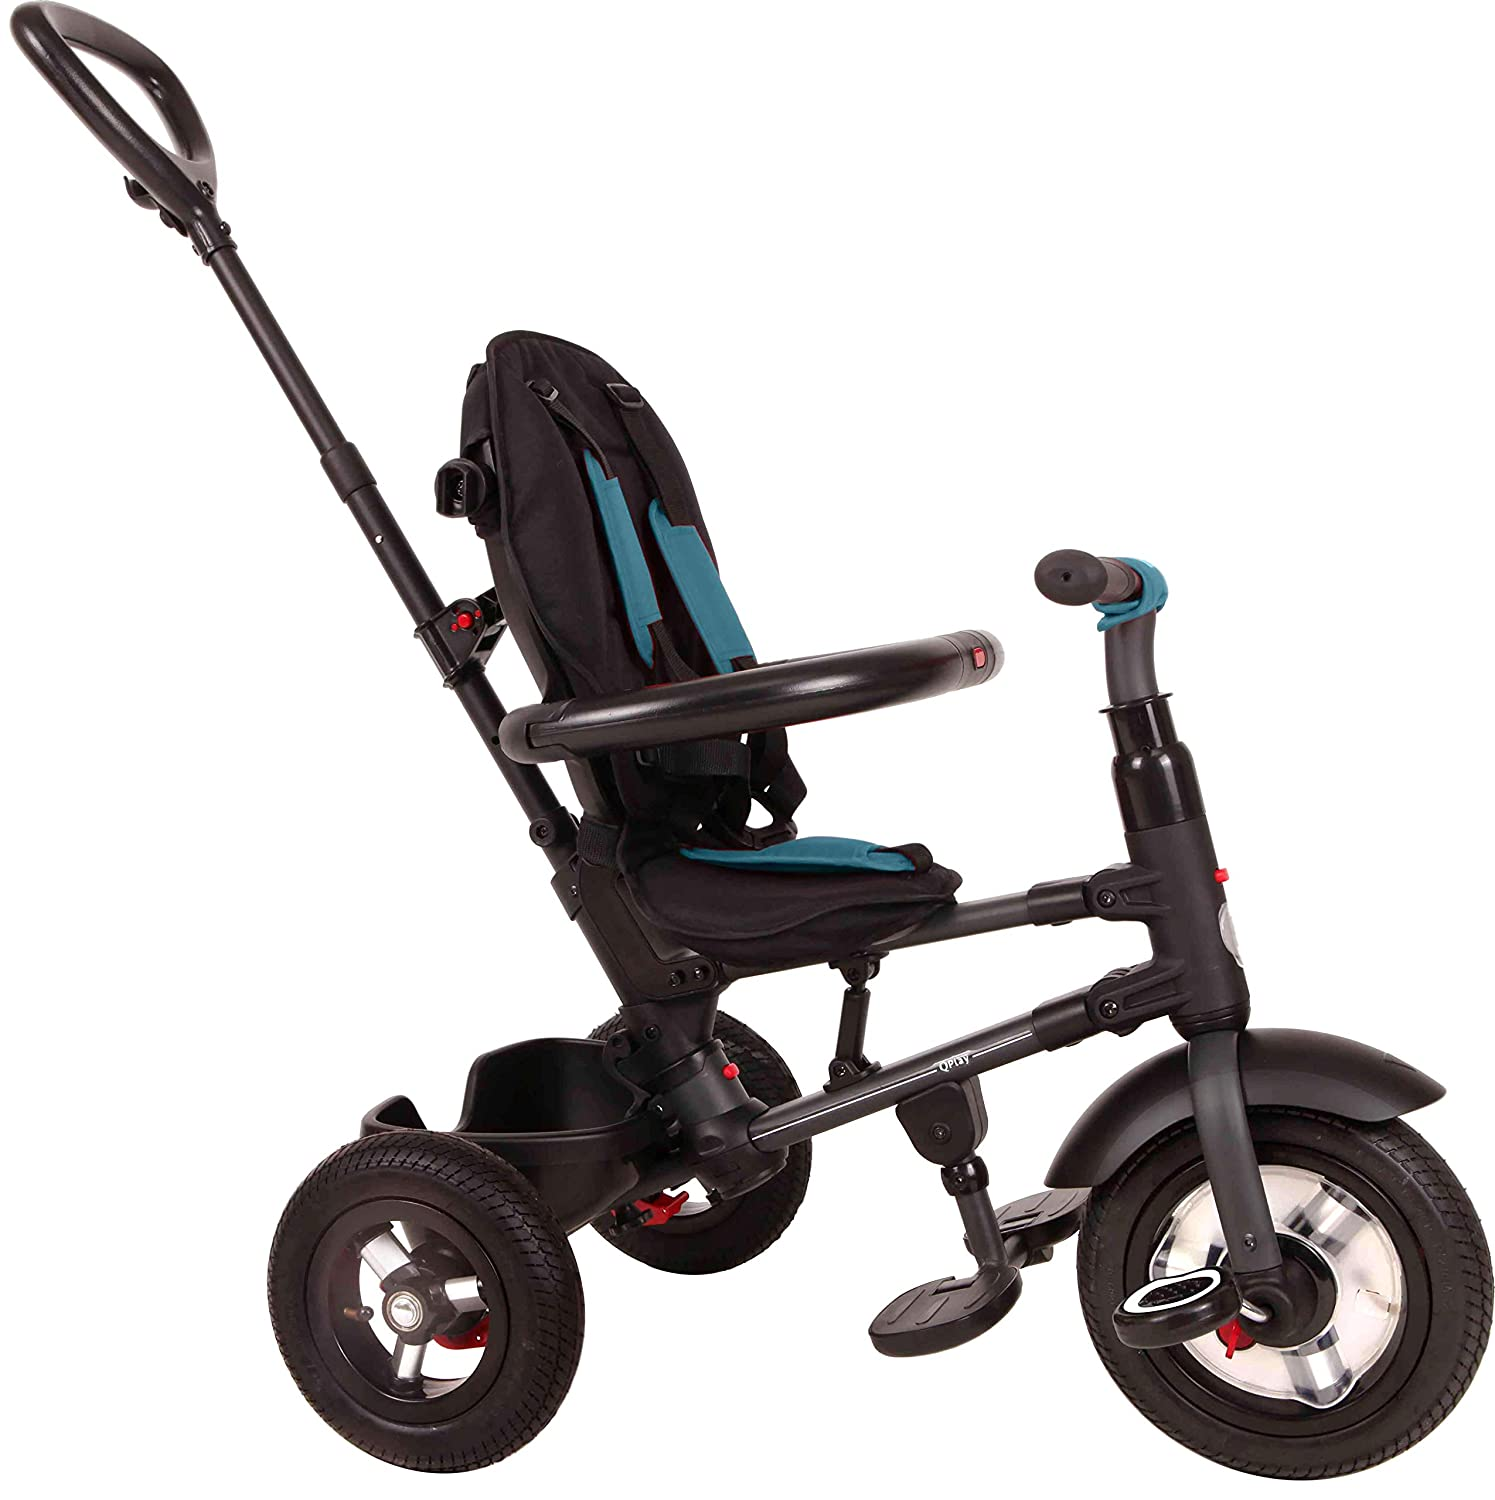 Rito Plus Air Tire Adjustable Compact Folding Trike Baby Stroller Black NEW